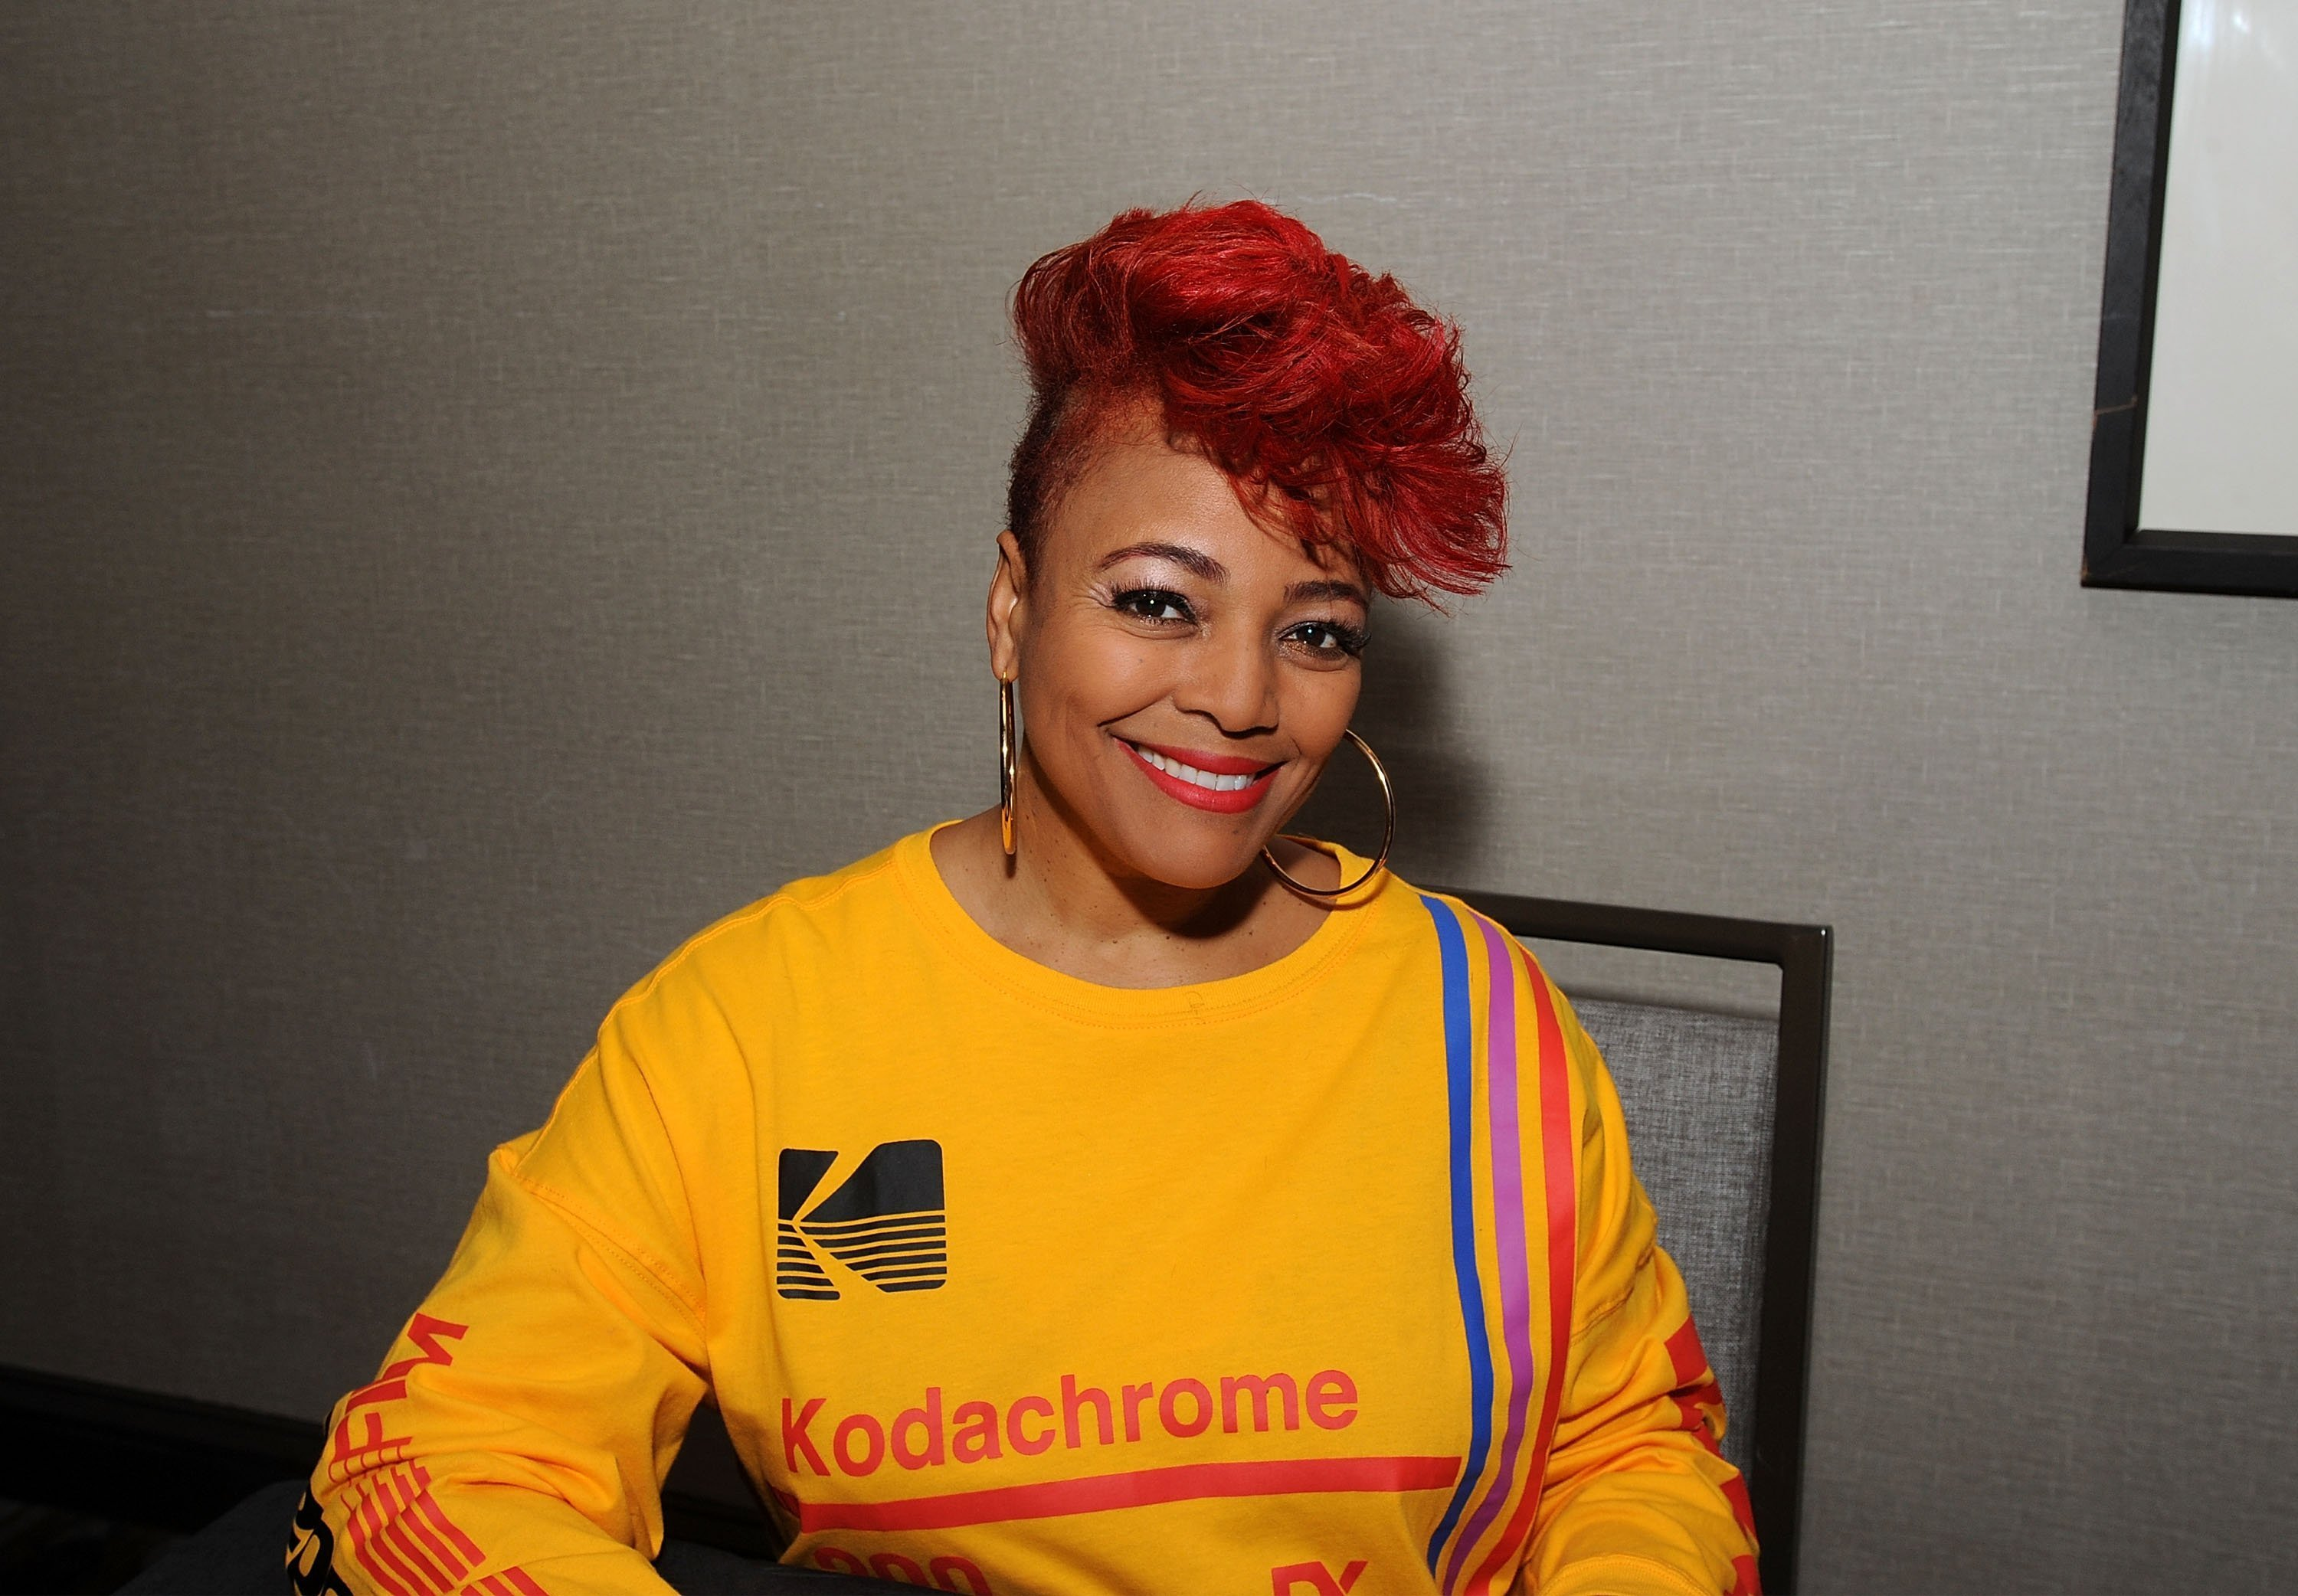 Kim Fields at the Chiller Theatre Expo Fall 2018 on Oct. 27, 2018 in New Jersey | Photo: Getty Images